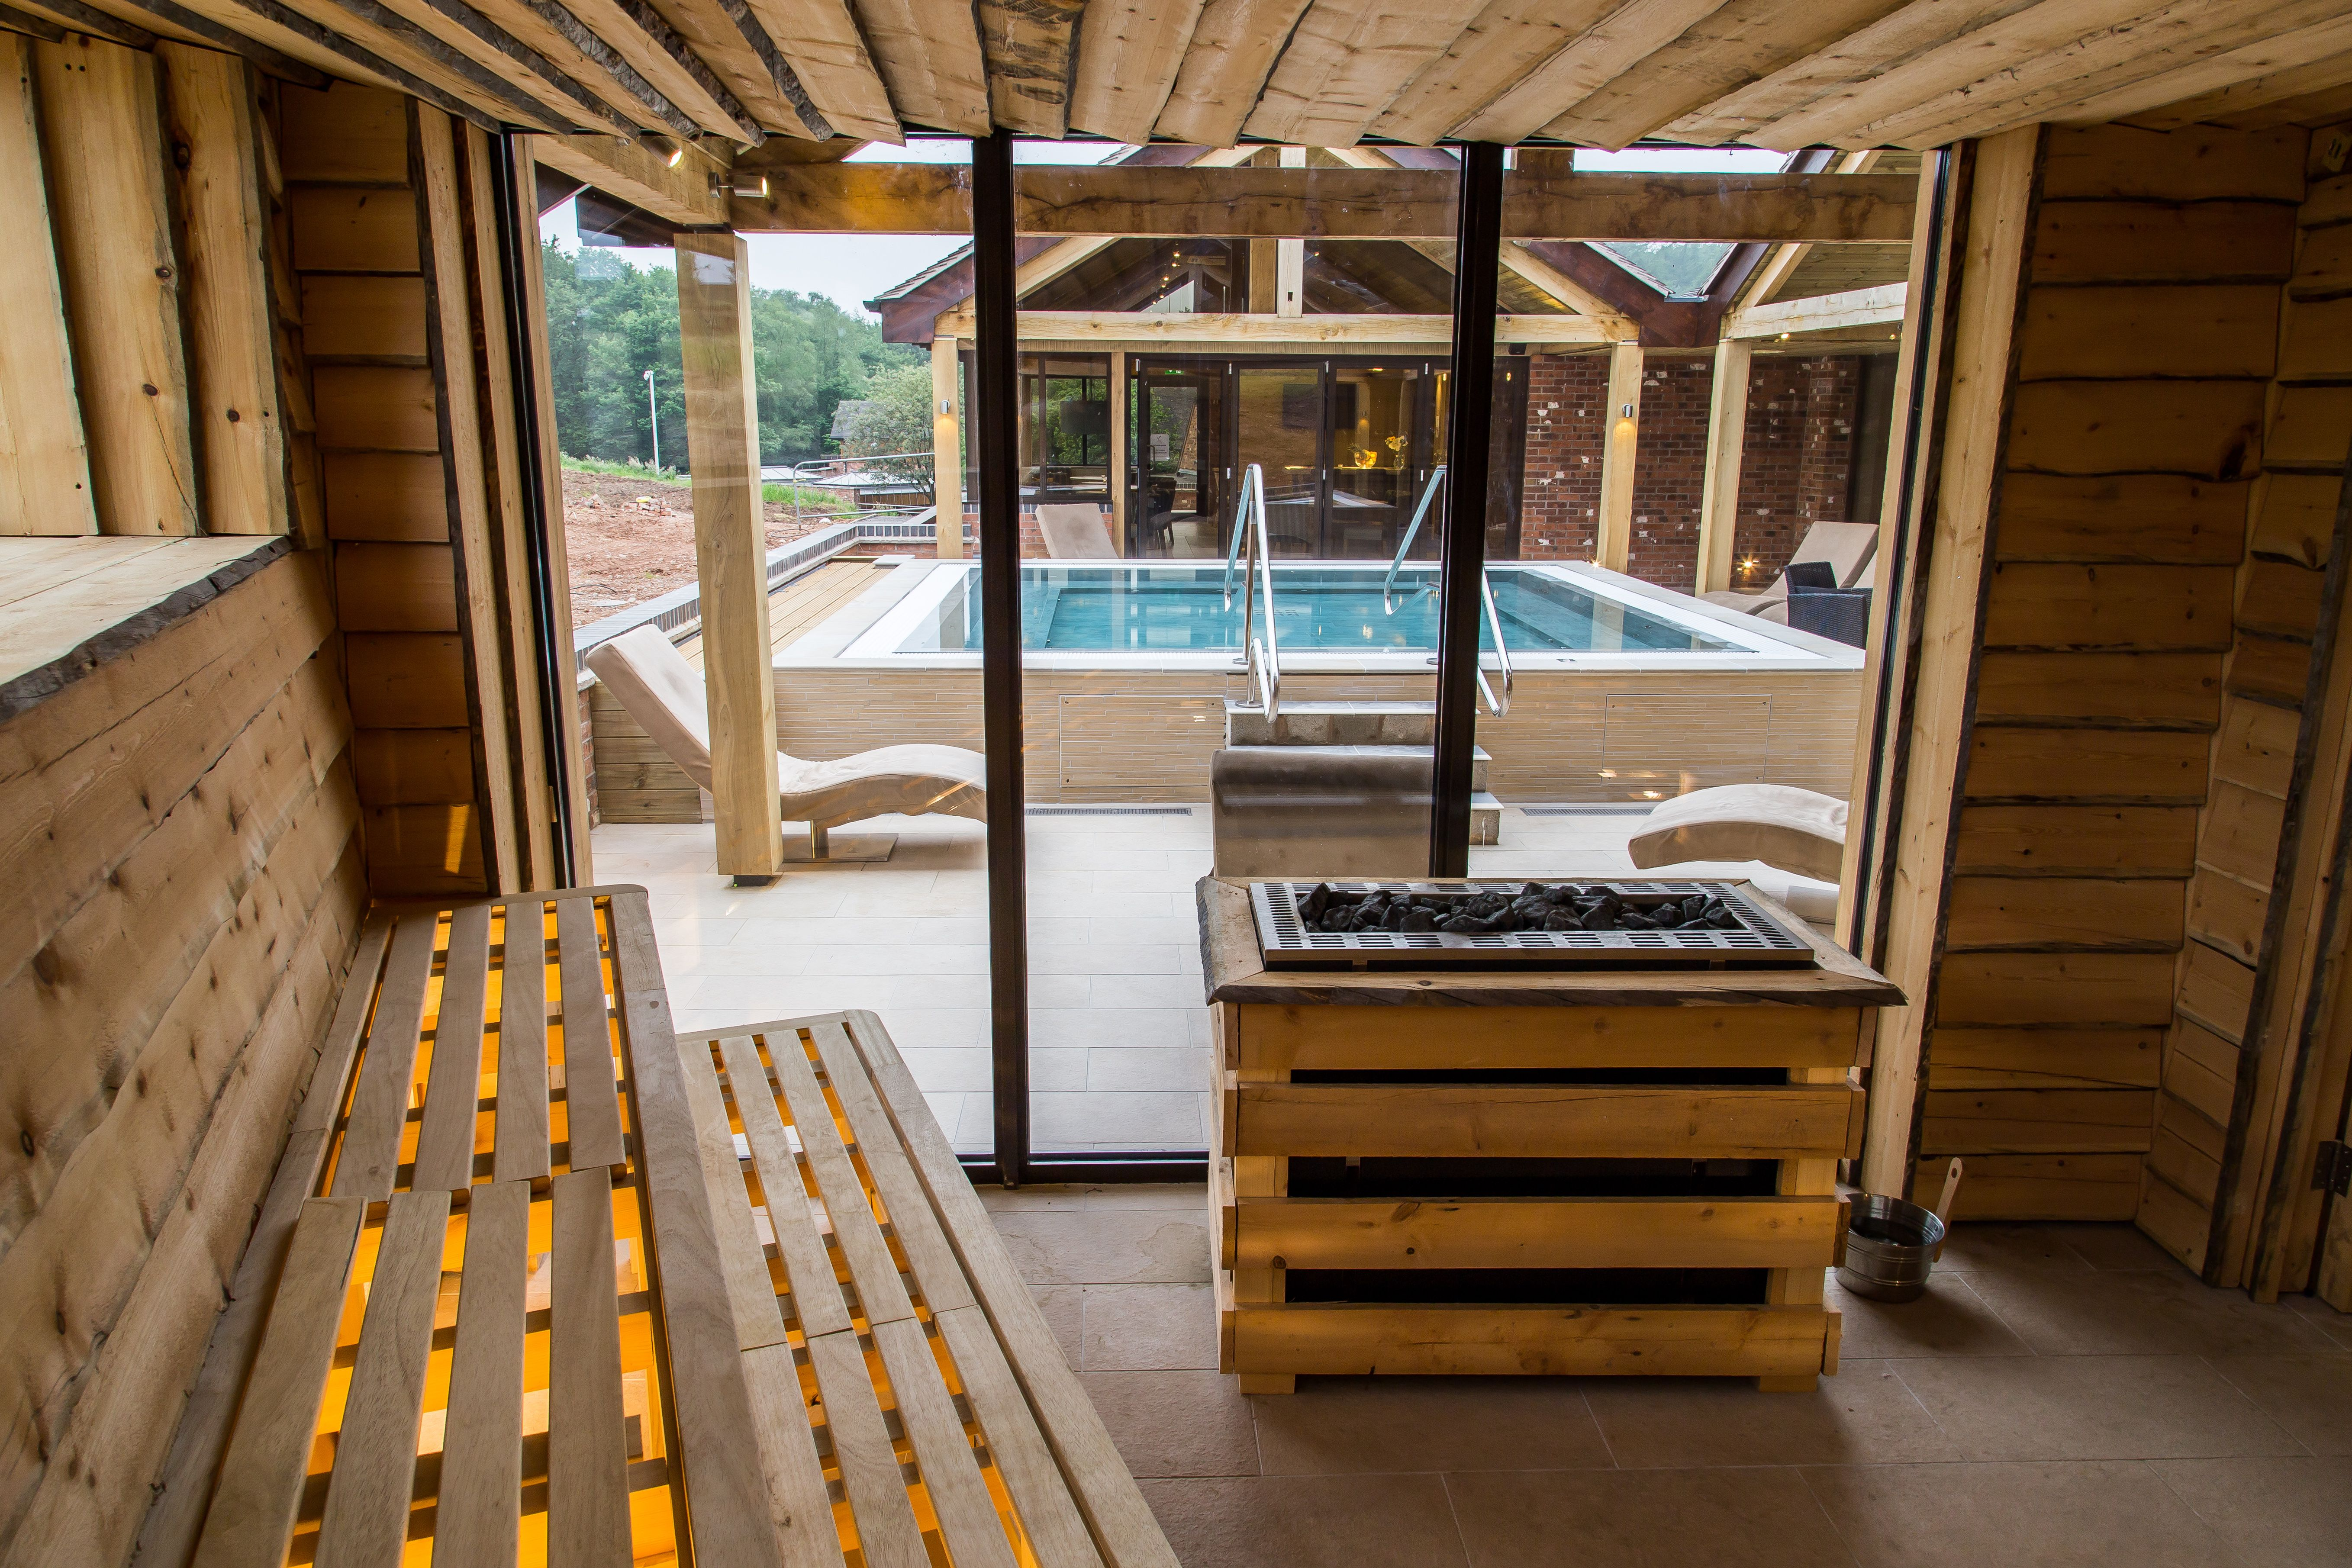 Our kelo sauna, with a view of the vitality pool! Moddershall Oaks Country Spa Retreat